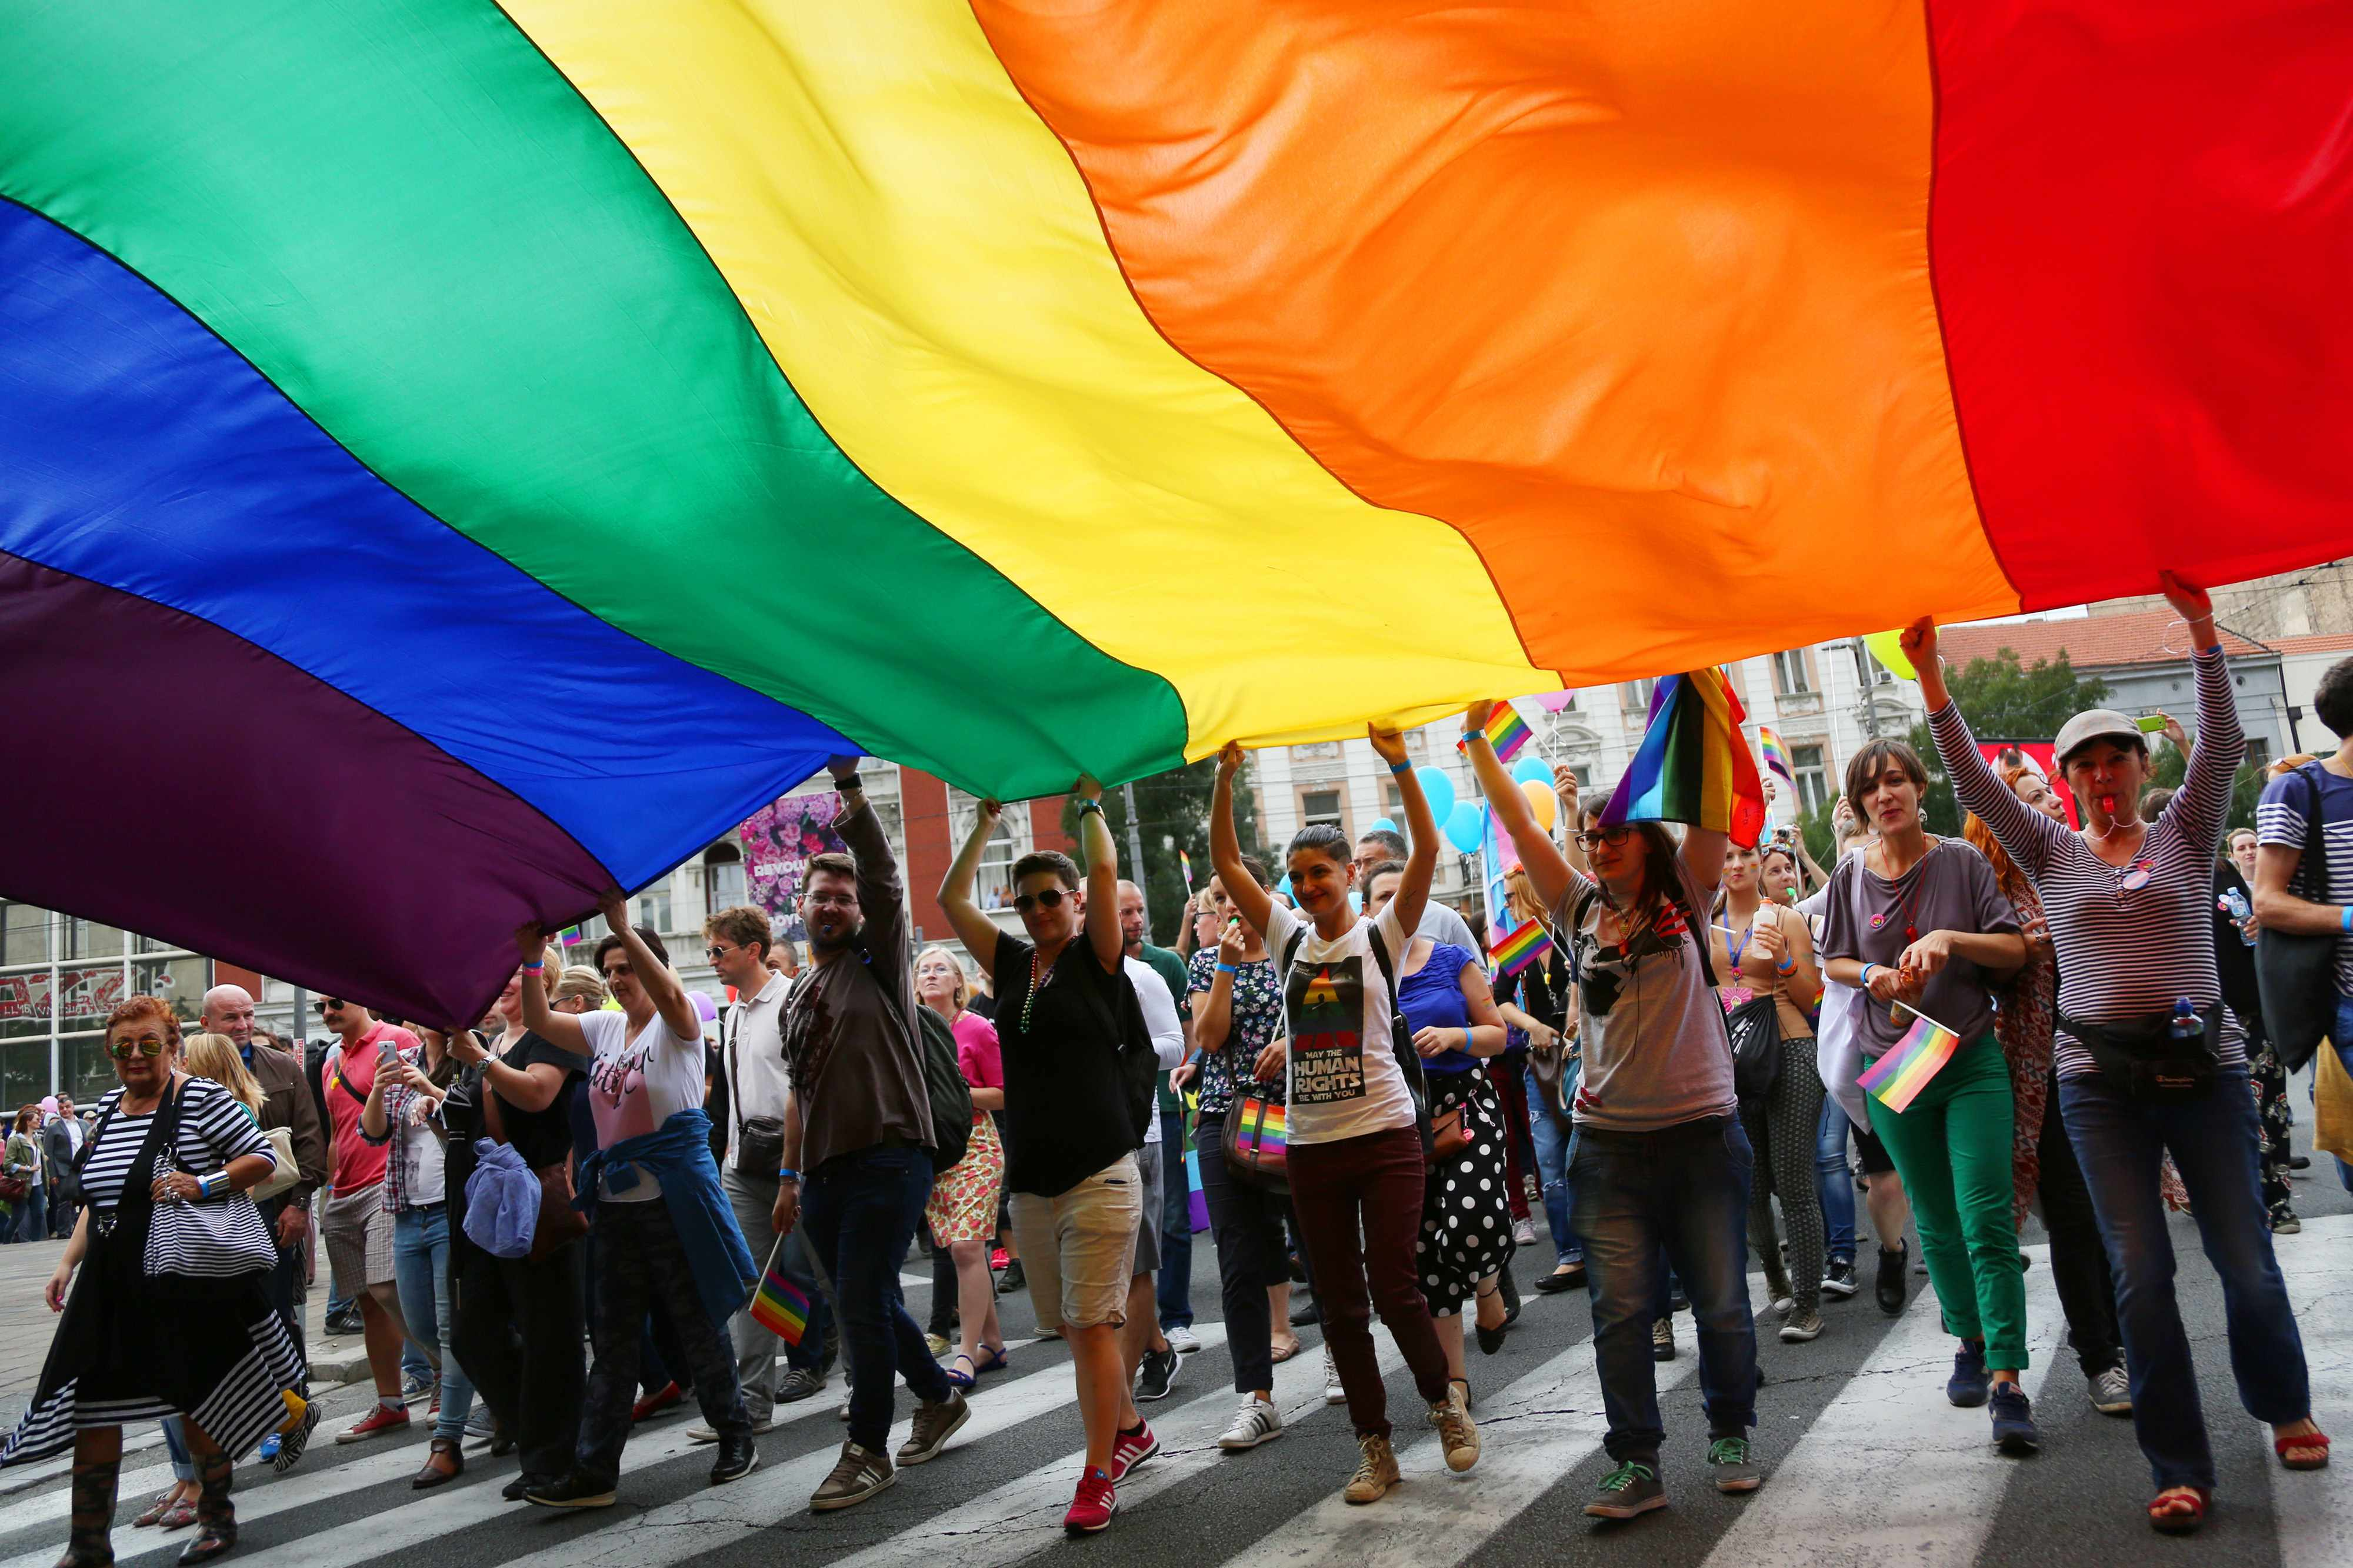 a group of smiling people in a Gay Pride parade, holding a large rainbow banner